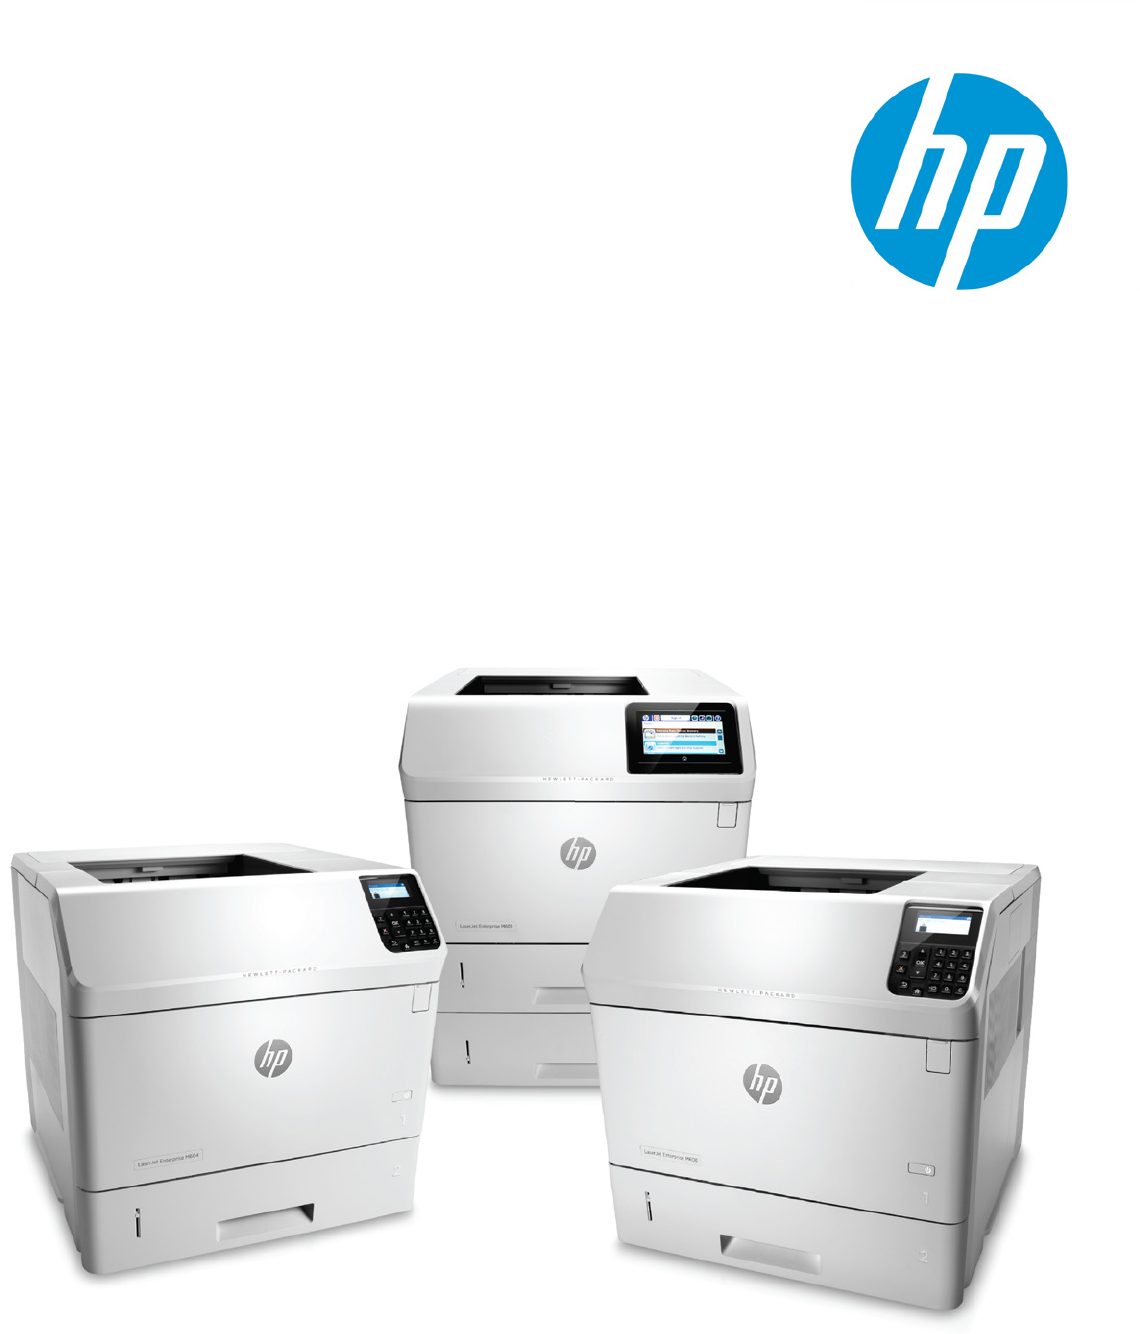 Hp business inkjet 2800 printer user guide and disassembly.